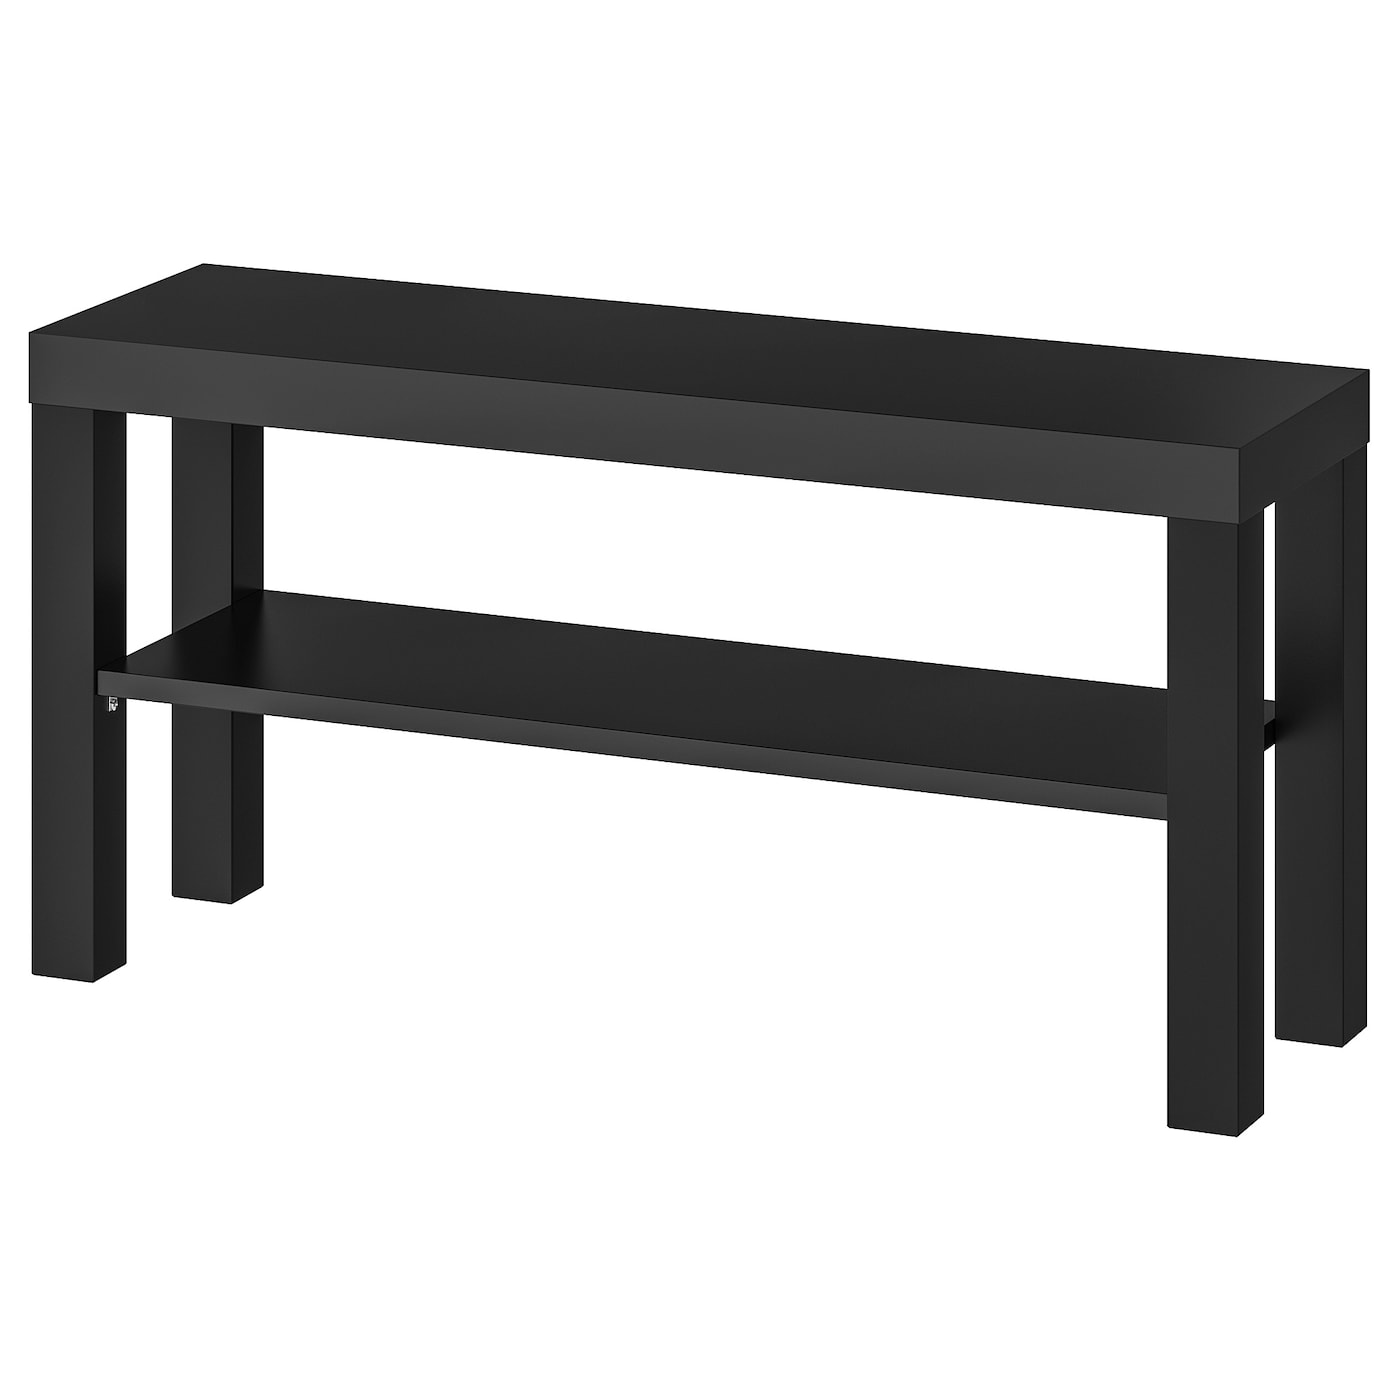 Lack Tv Bench Black Ikea